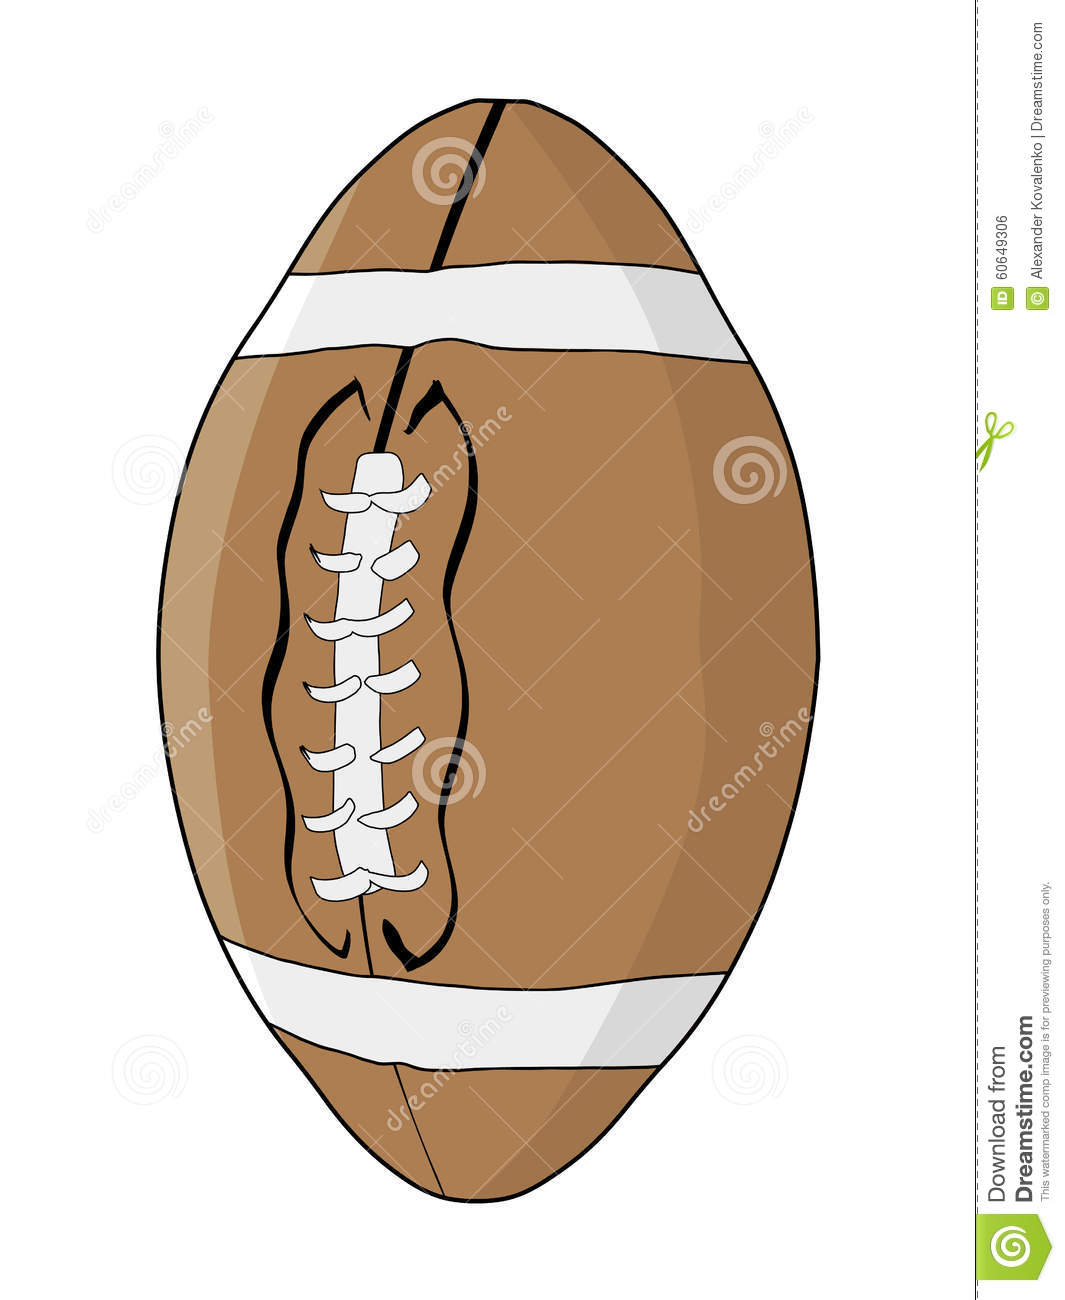 Football Kickoff Clipart